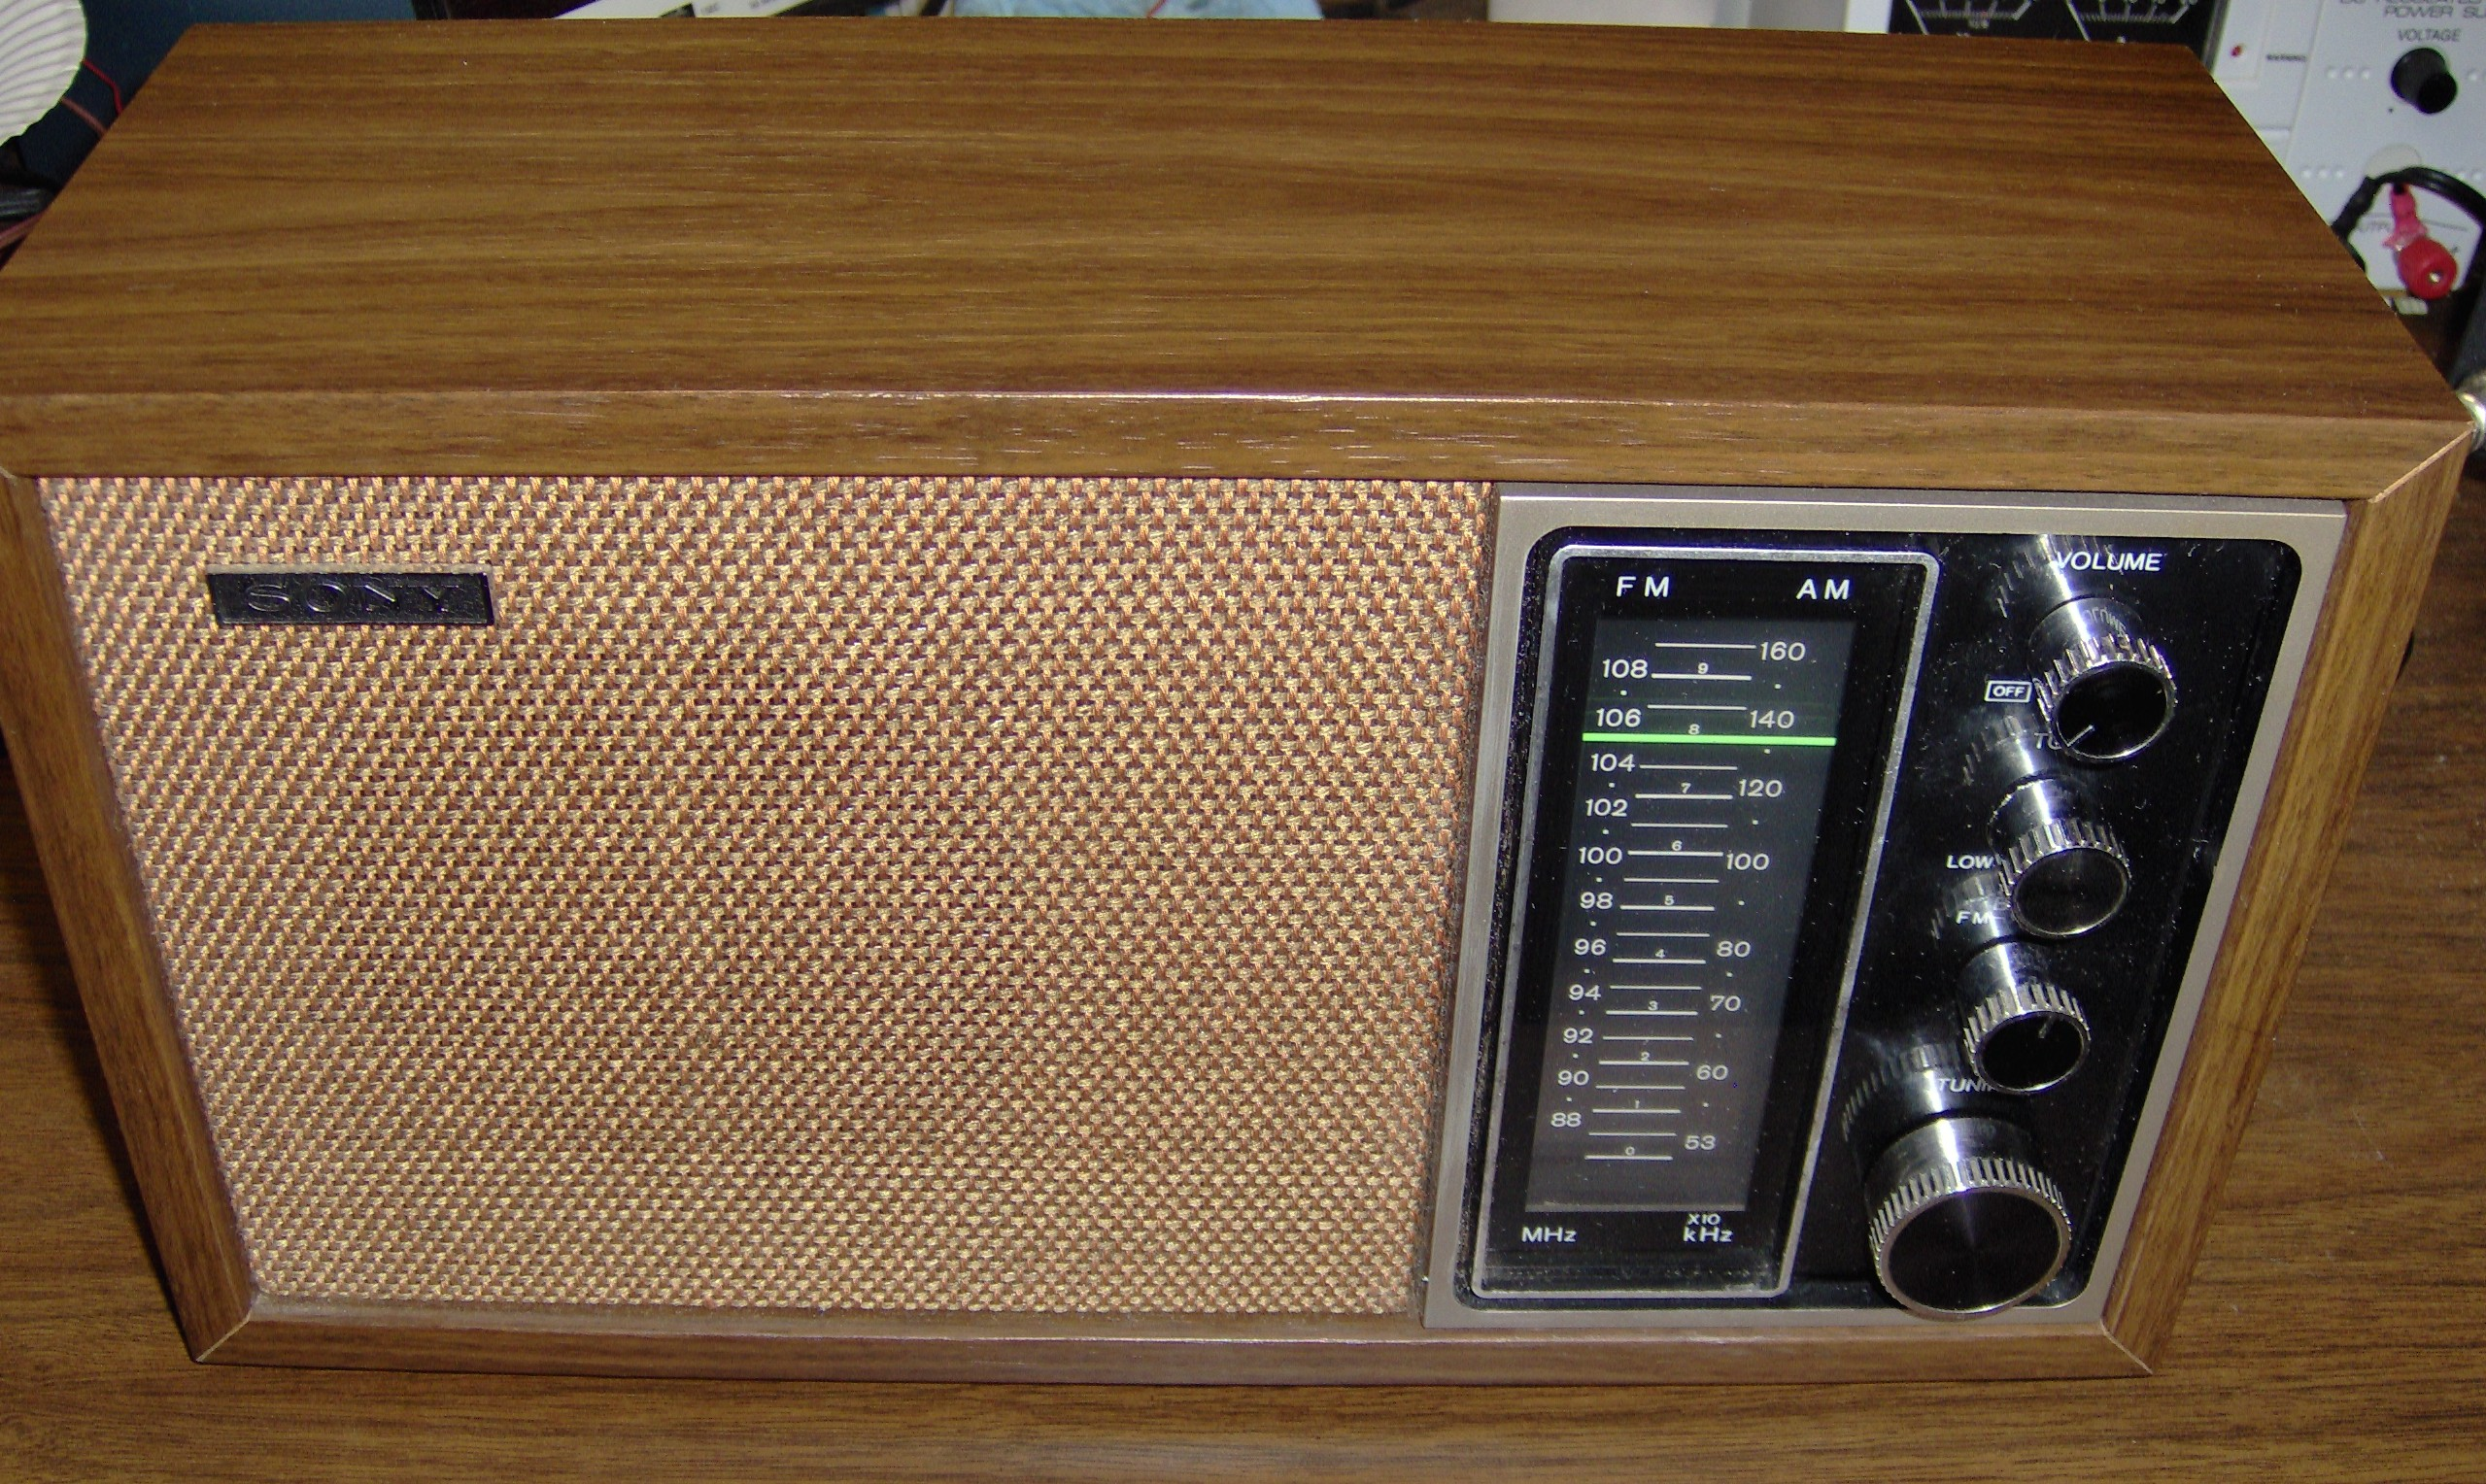 Sony AM-FM radio